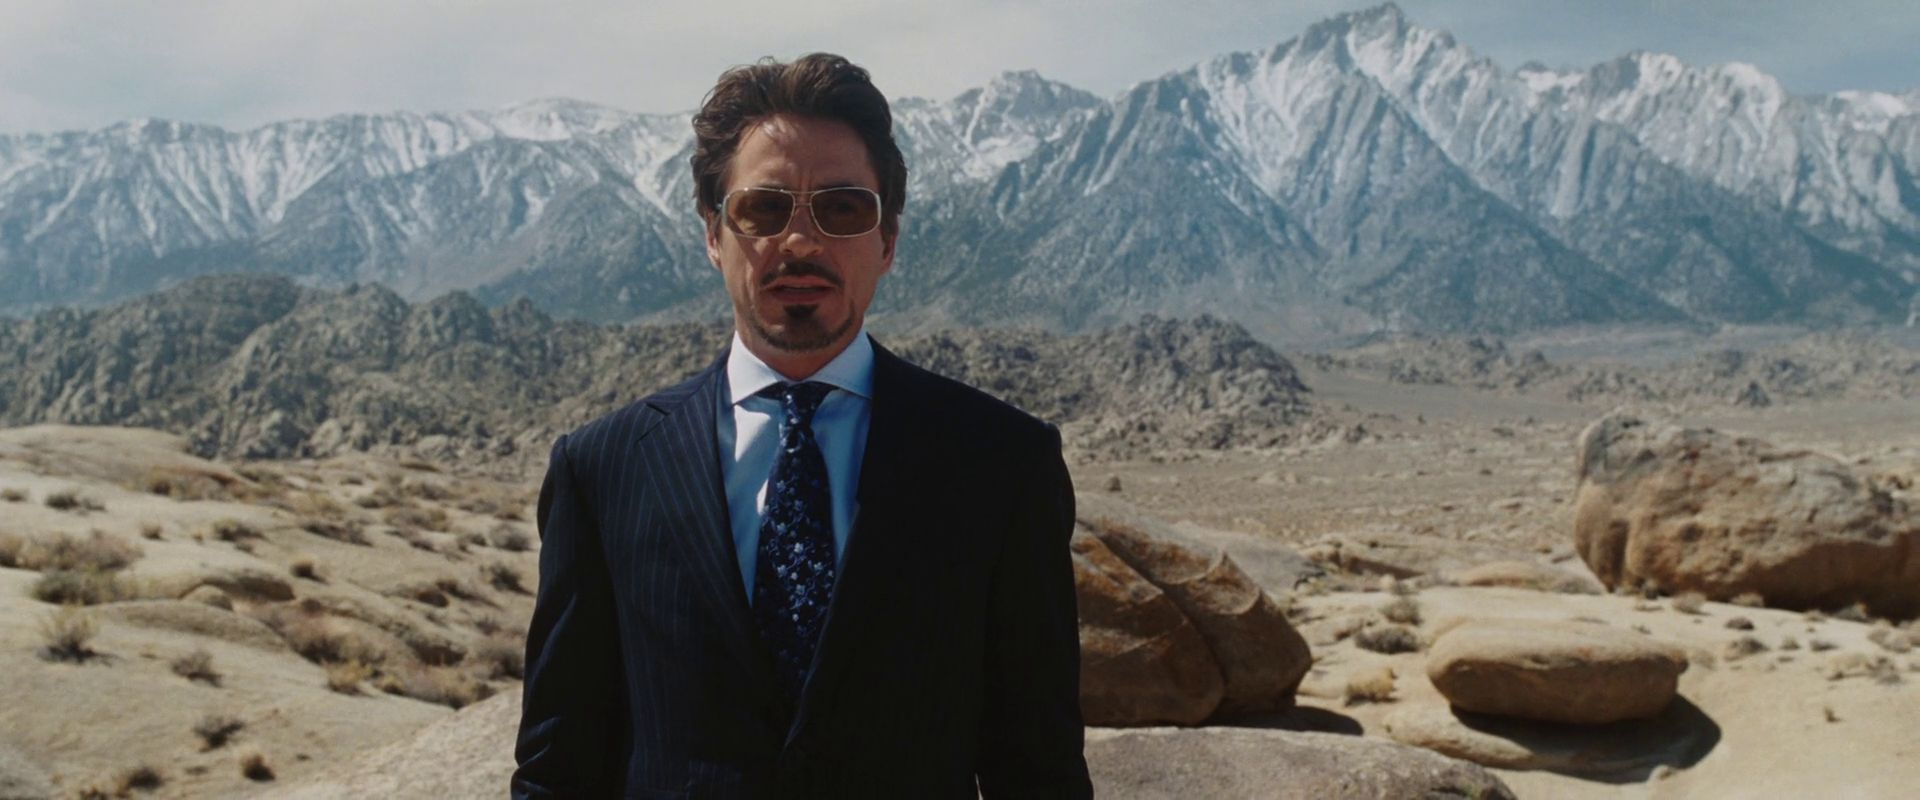 ironman in afghanistan